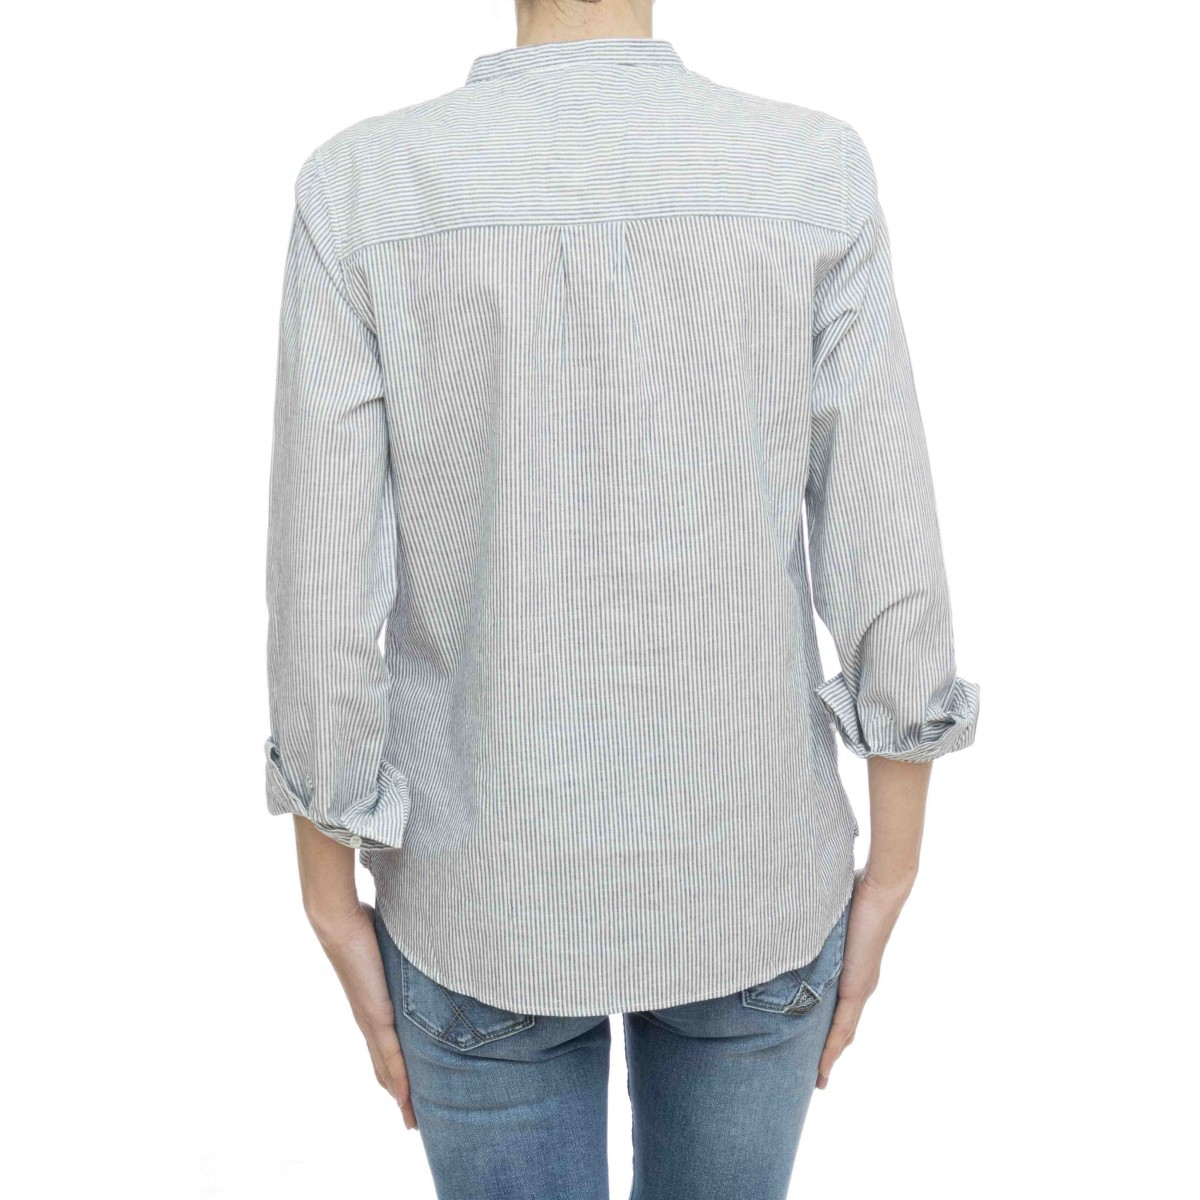 Camicia donna - S19202 camicia coreana righine